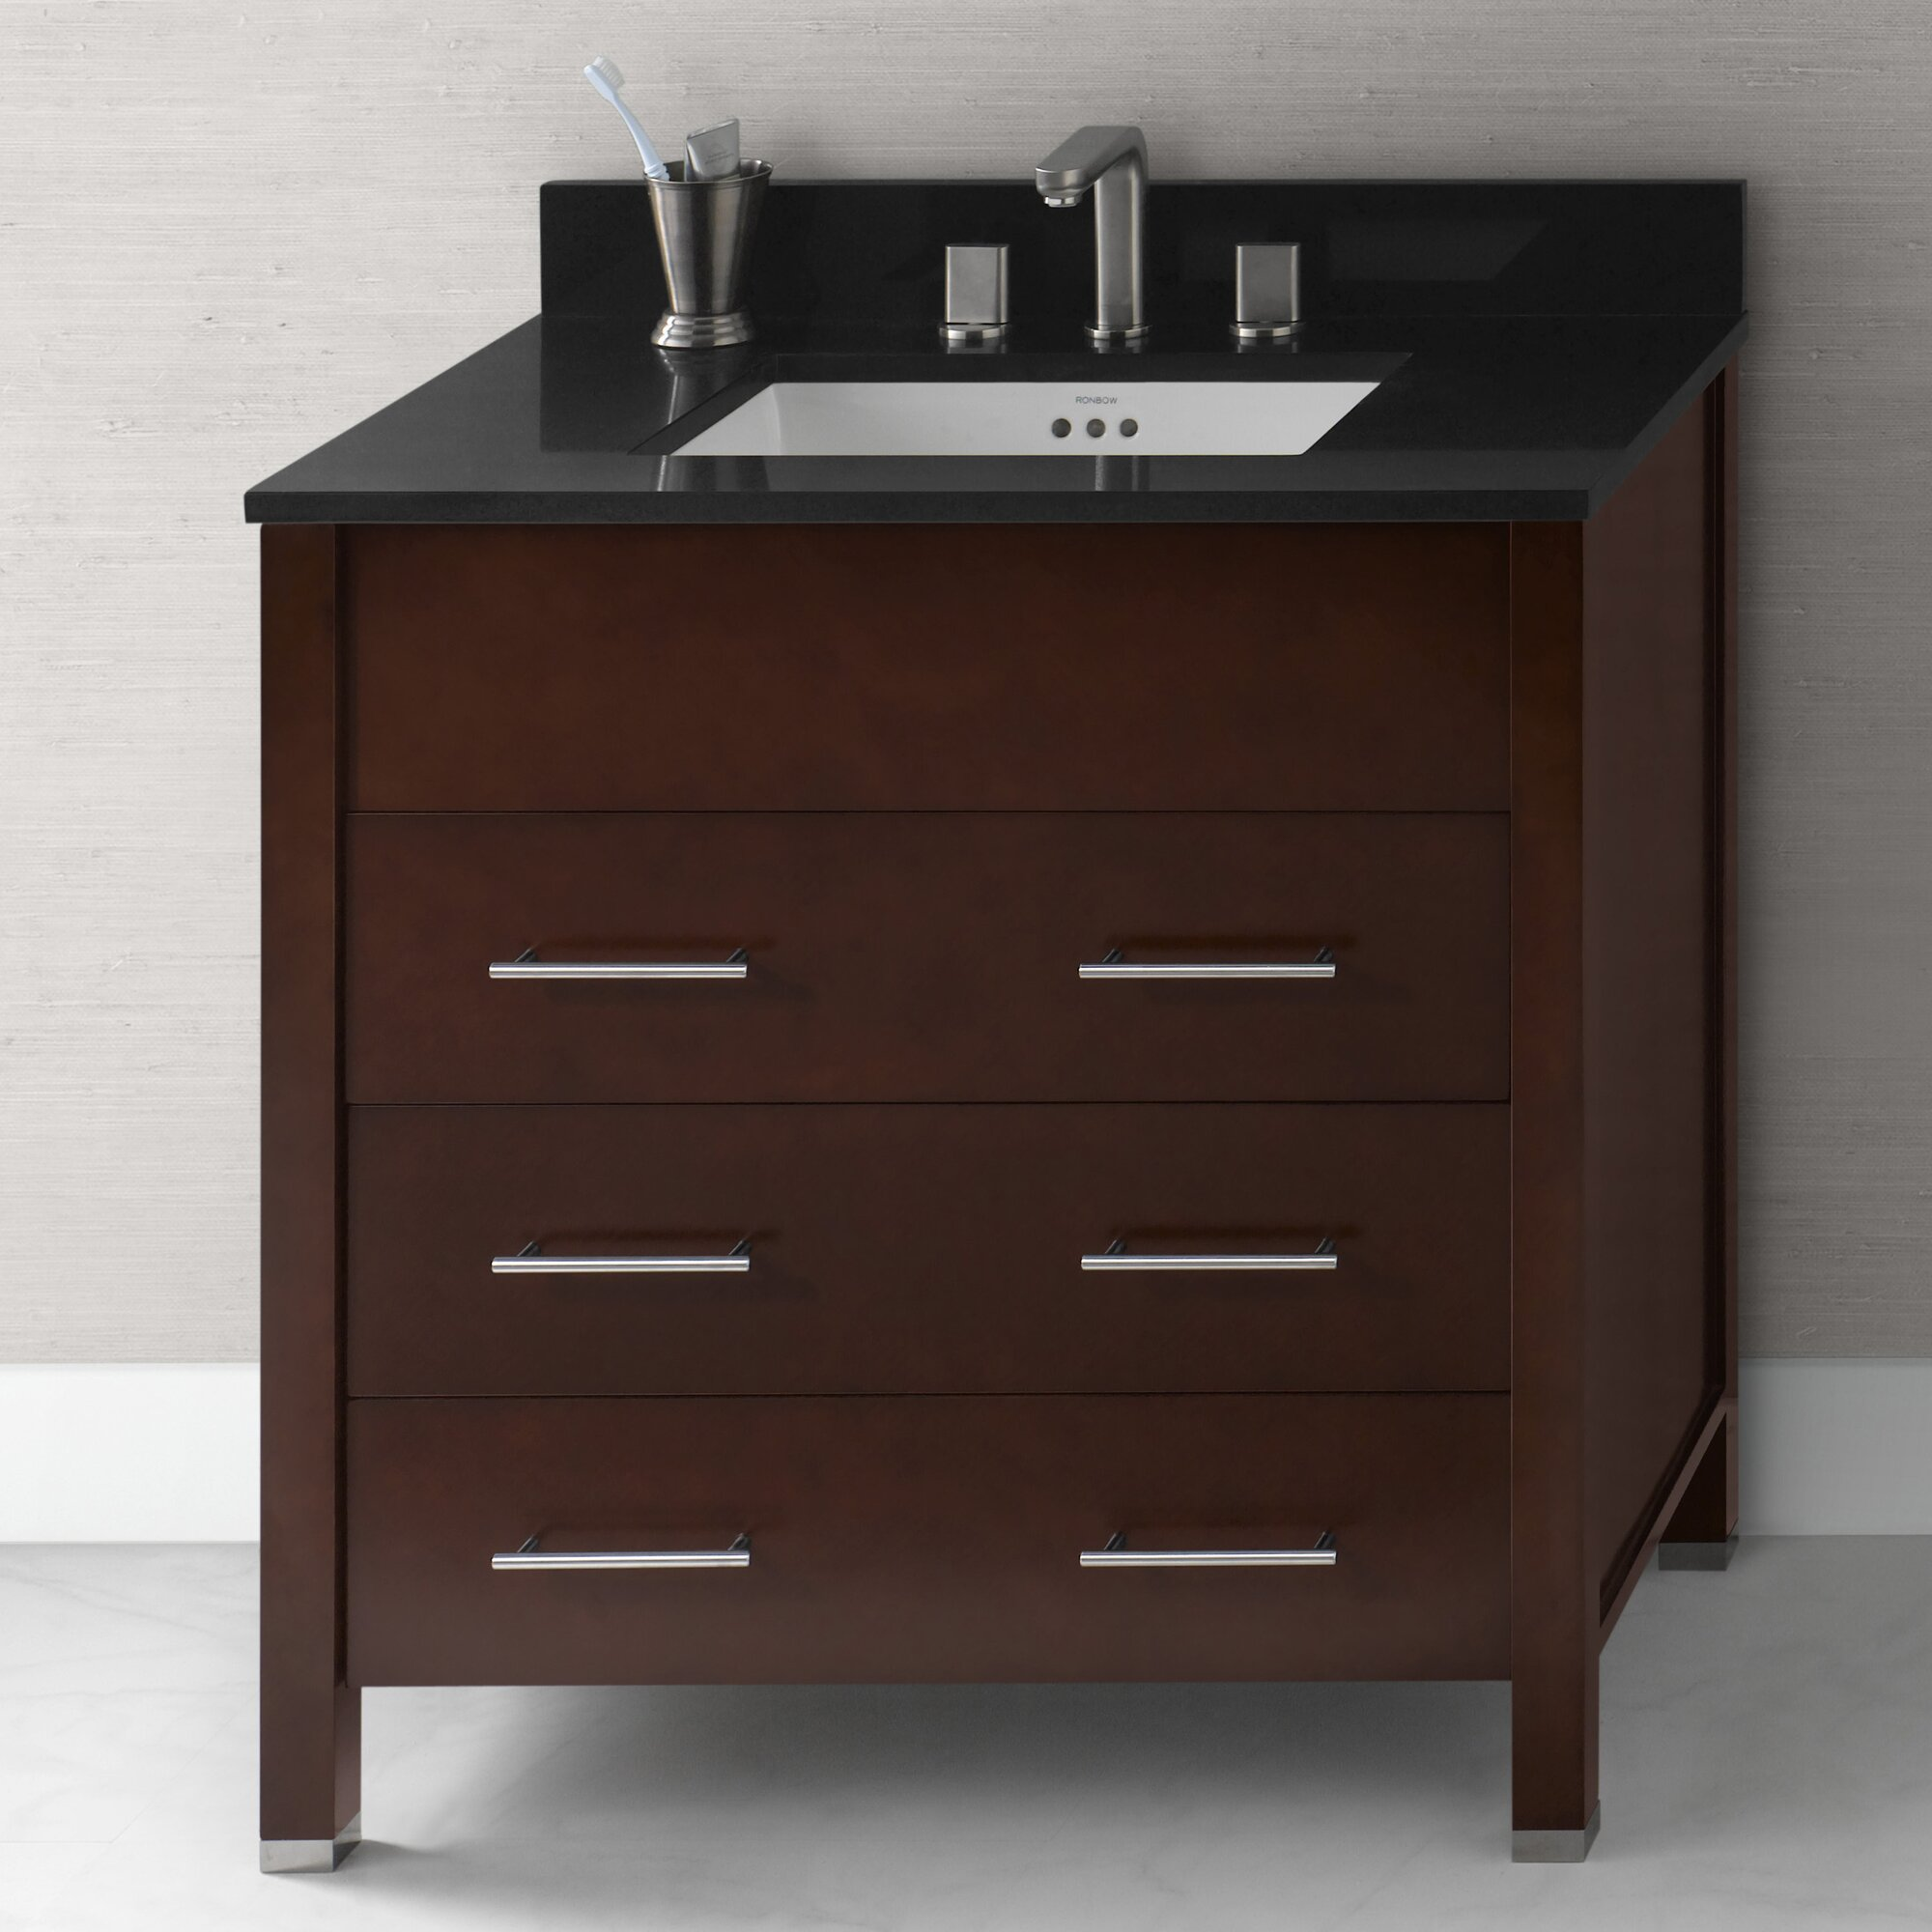 Ronbow kali 31 bathroom vanity base cabinet in dark cherry wayfair - Bathroom vanity cabinet base only ...